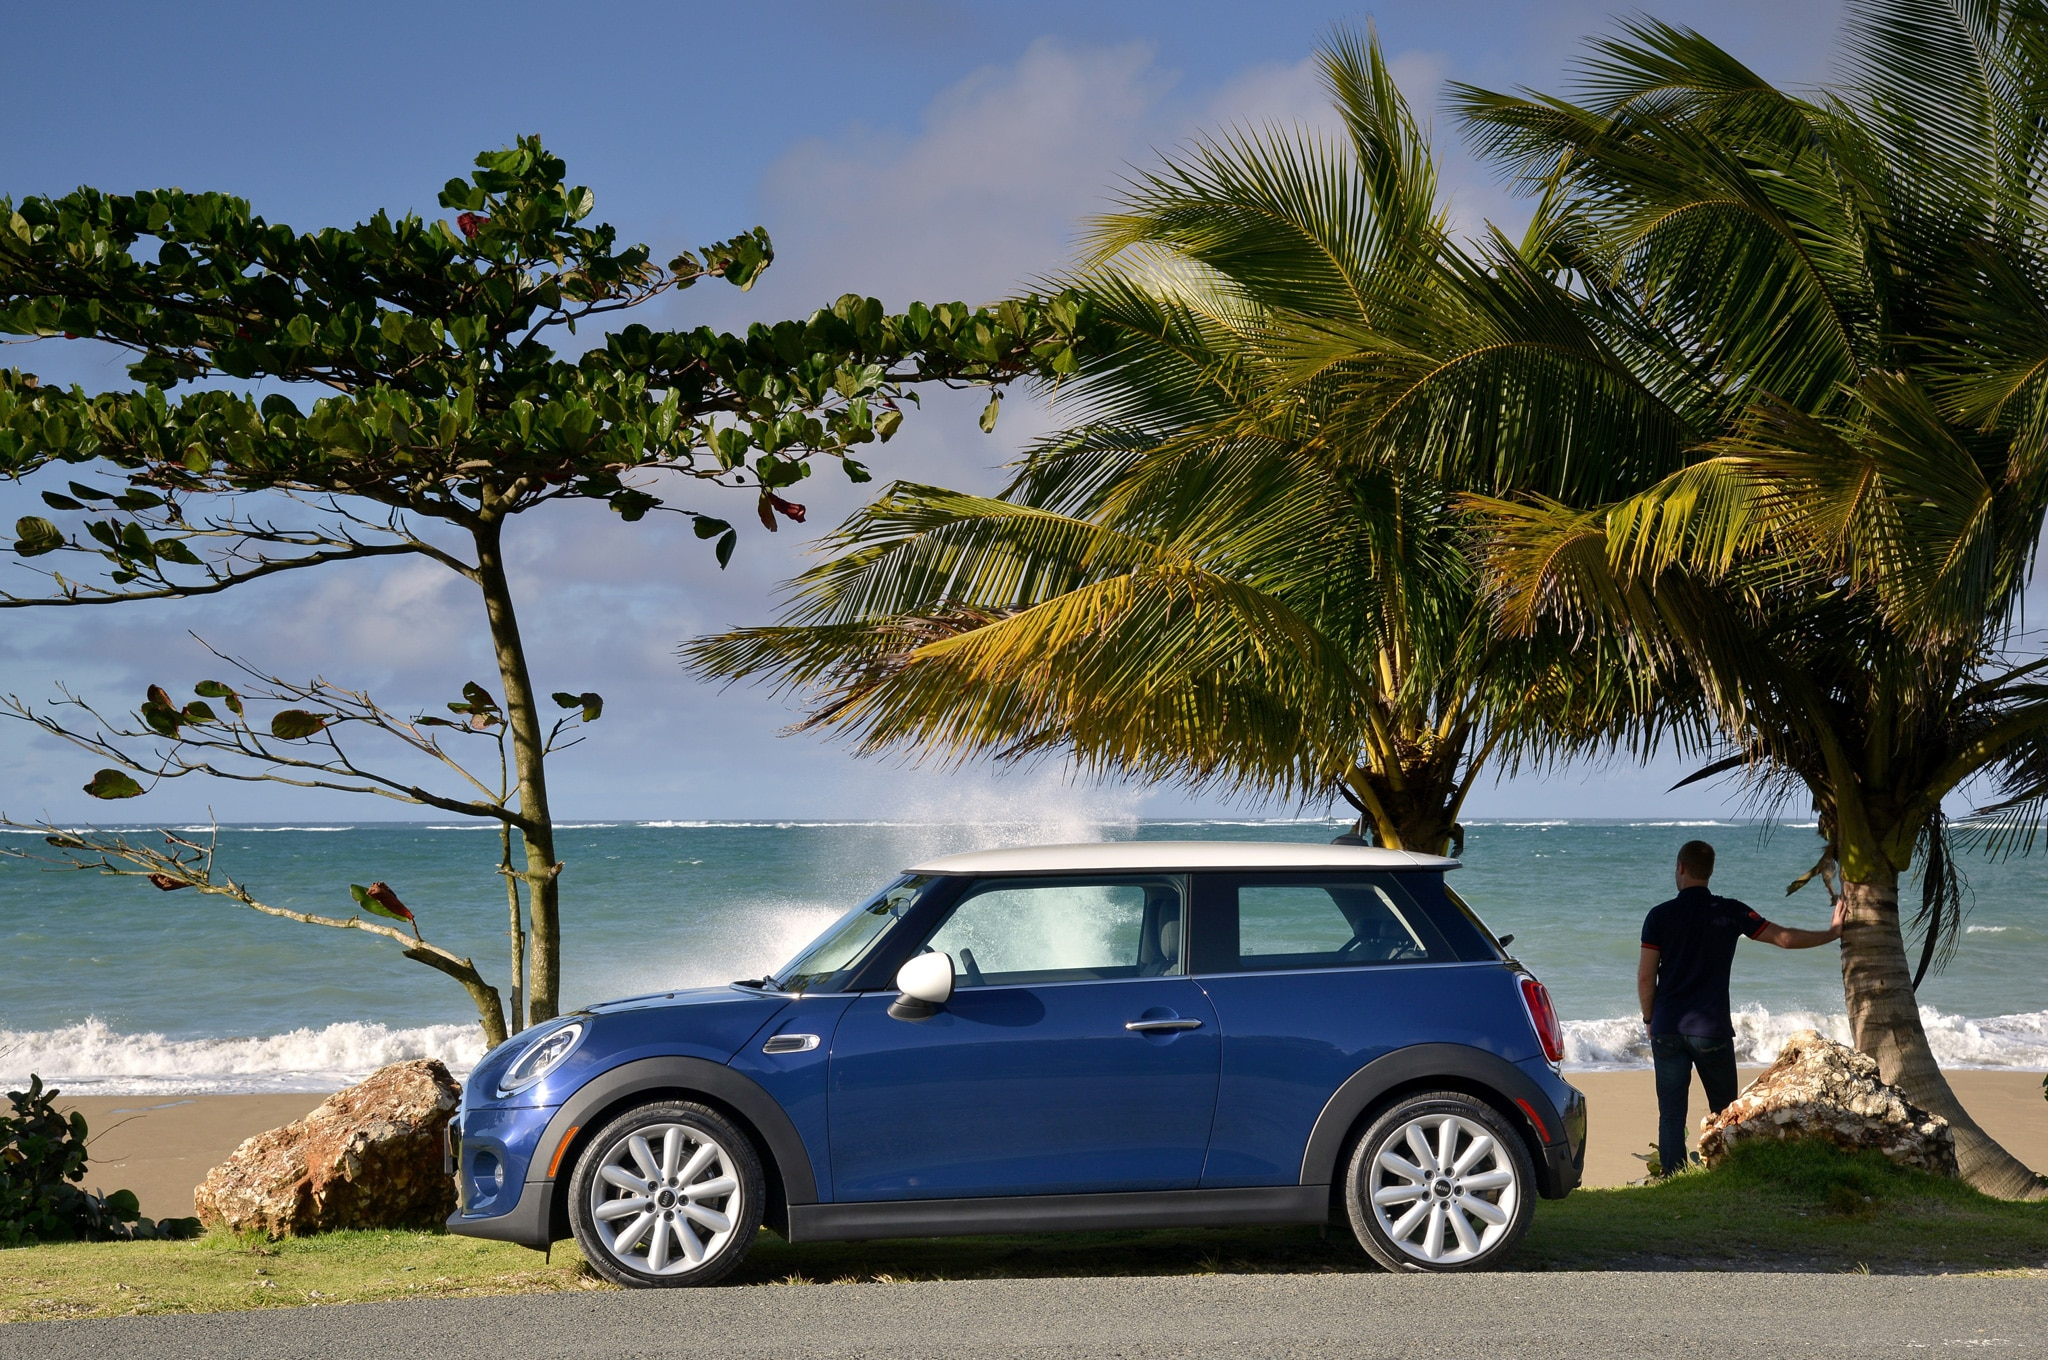 2014 Mini Cooper Side View On Coastline2